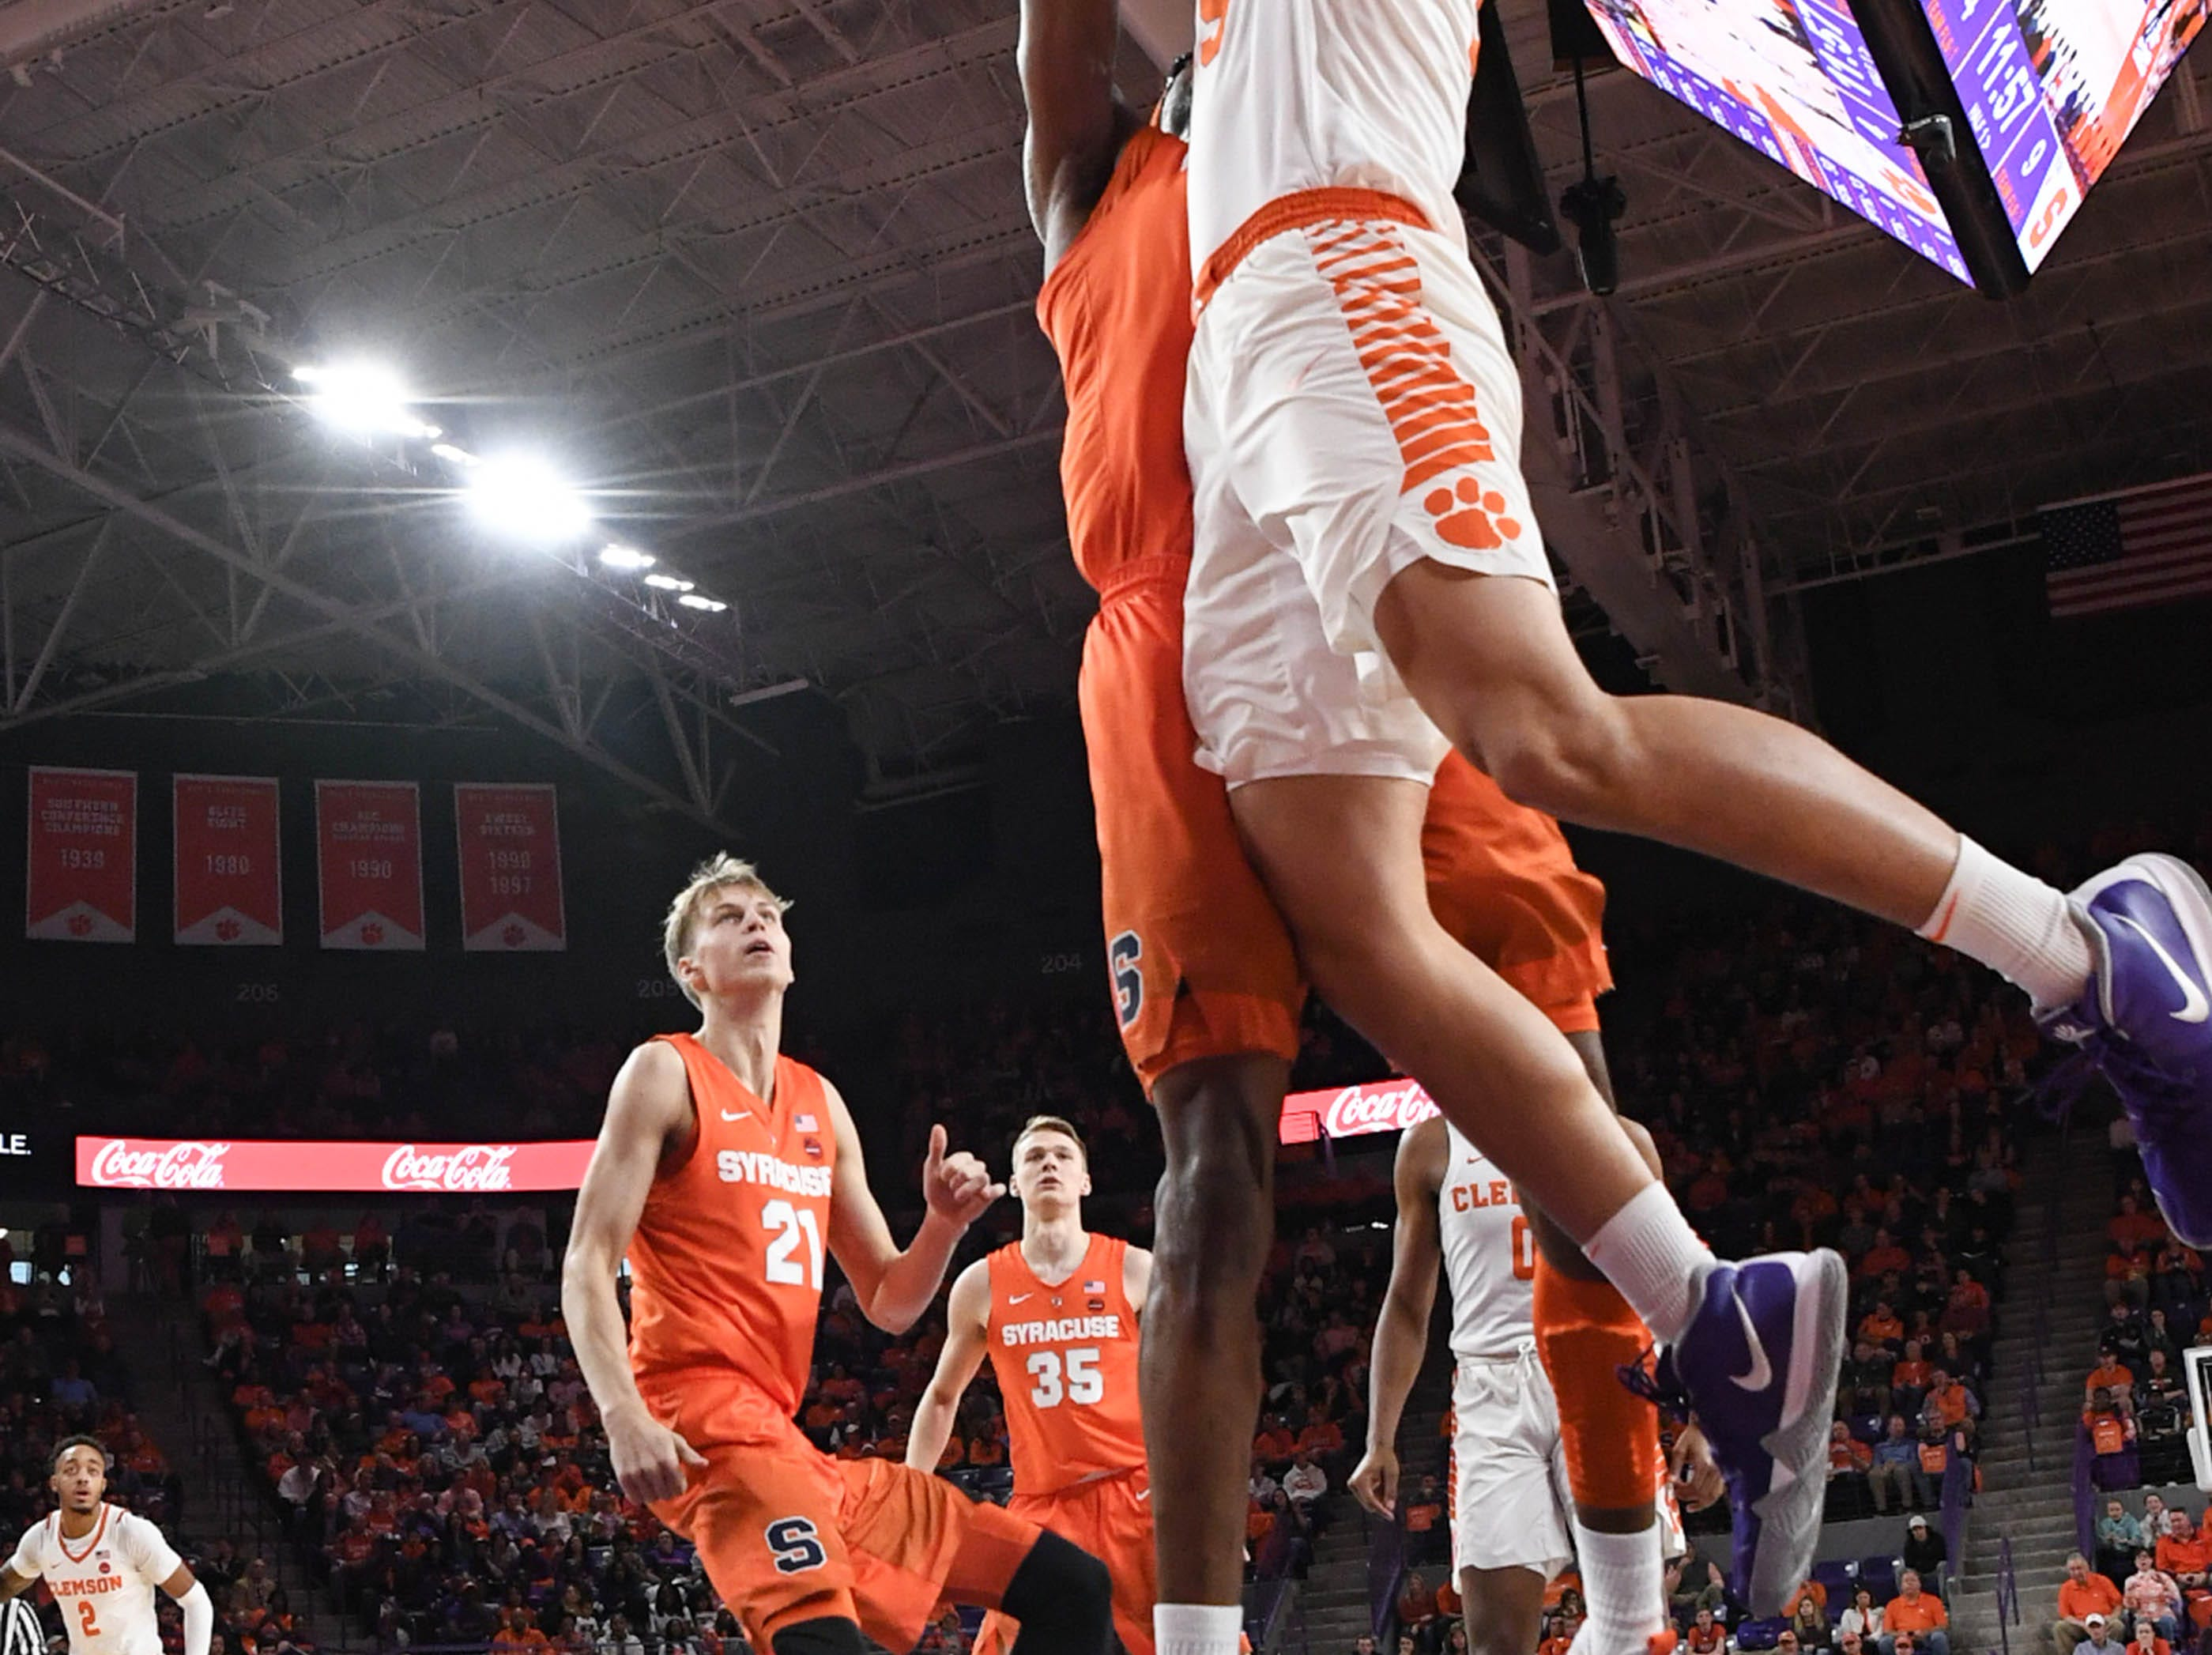 Clemson forward Javan White (32) attempts to dunk against Syracuse during the first half in Littlejohn Coliseum in Clemson Saturday, March 9, 2019.